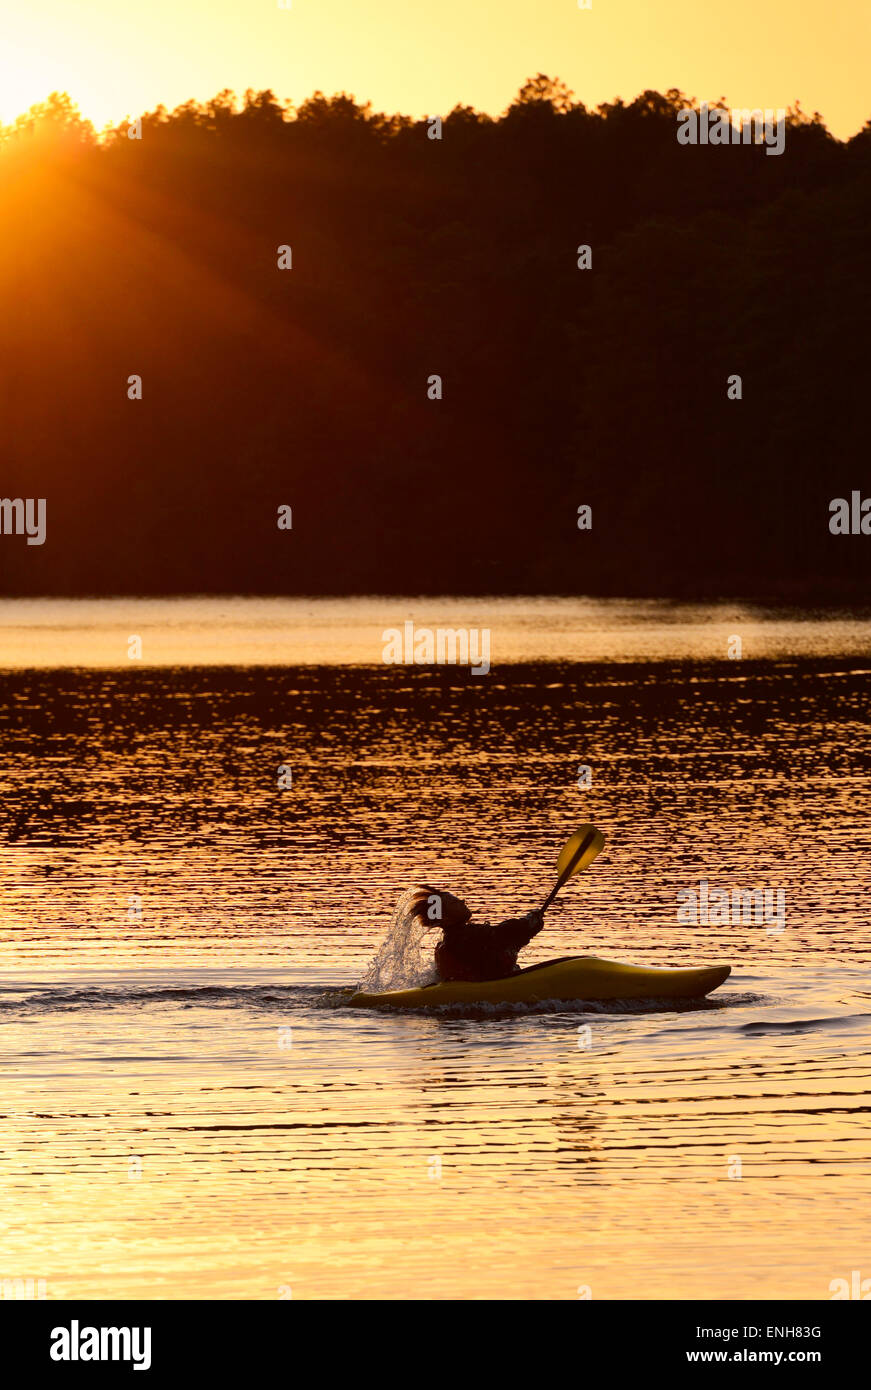 A kayaker silhouetted in the Sunset at 'Reservoir Park' Southern Pines, North Carolina, Moore County NC. - Stock Image